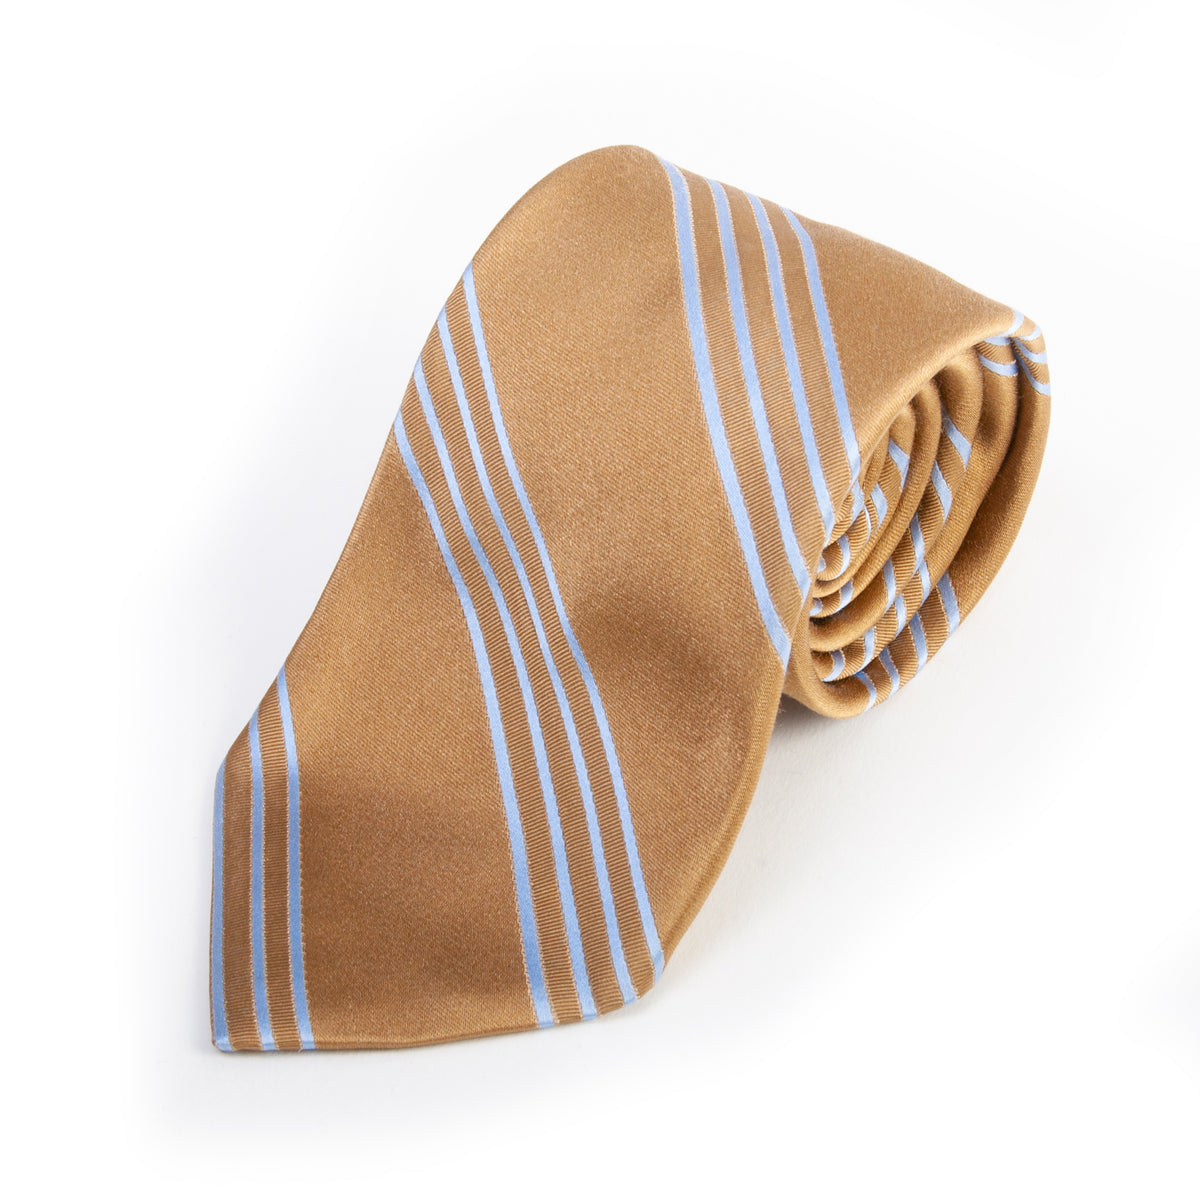 Faconnable Blue on Brown Striped Silk Tie for Luxmrkt.com Menswear Consignment Edmonton